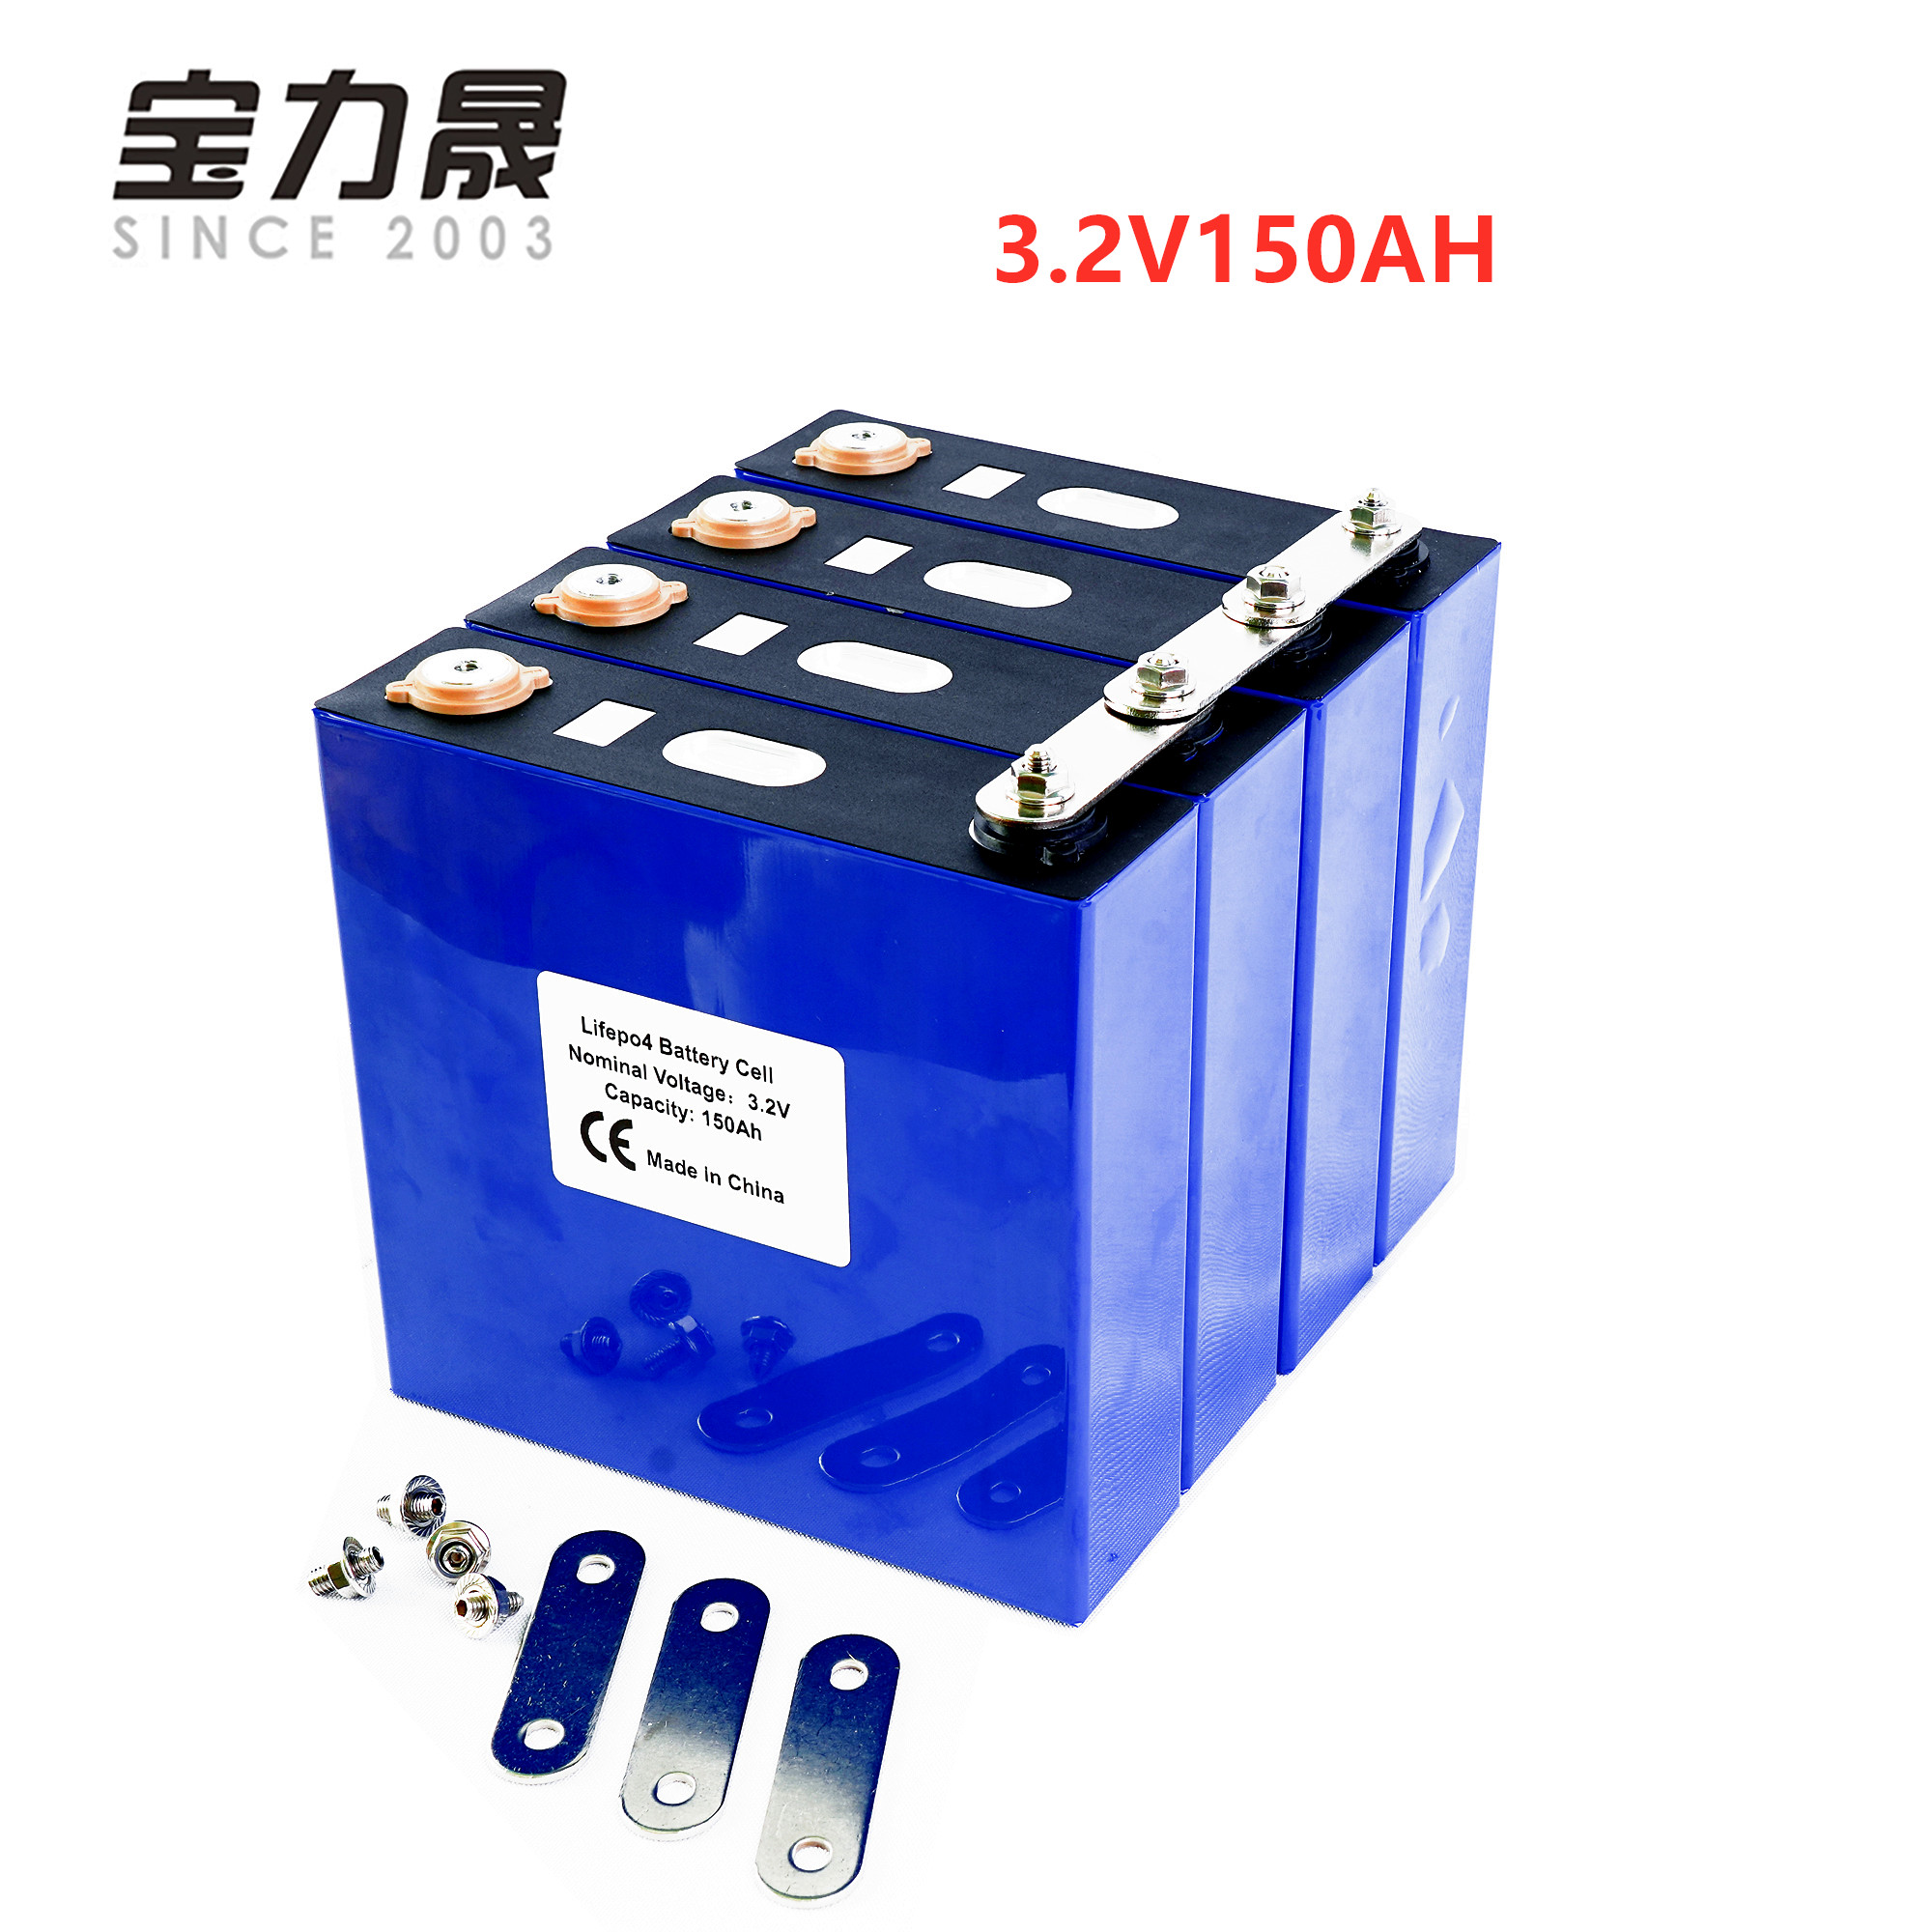 4PCS 3.2V <font><b>150Ah</b></font> Lithium Iron Phosphate Cell <font><b>lifepo4</b></font> battery Cycle 4000 Times 3C Solar <font><b>12V</b></font> <font><b>150Ah</b></font> cells not 120Ah EU US TAX FREE image